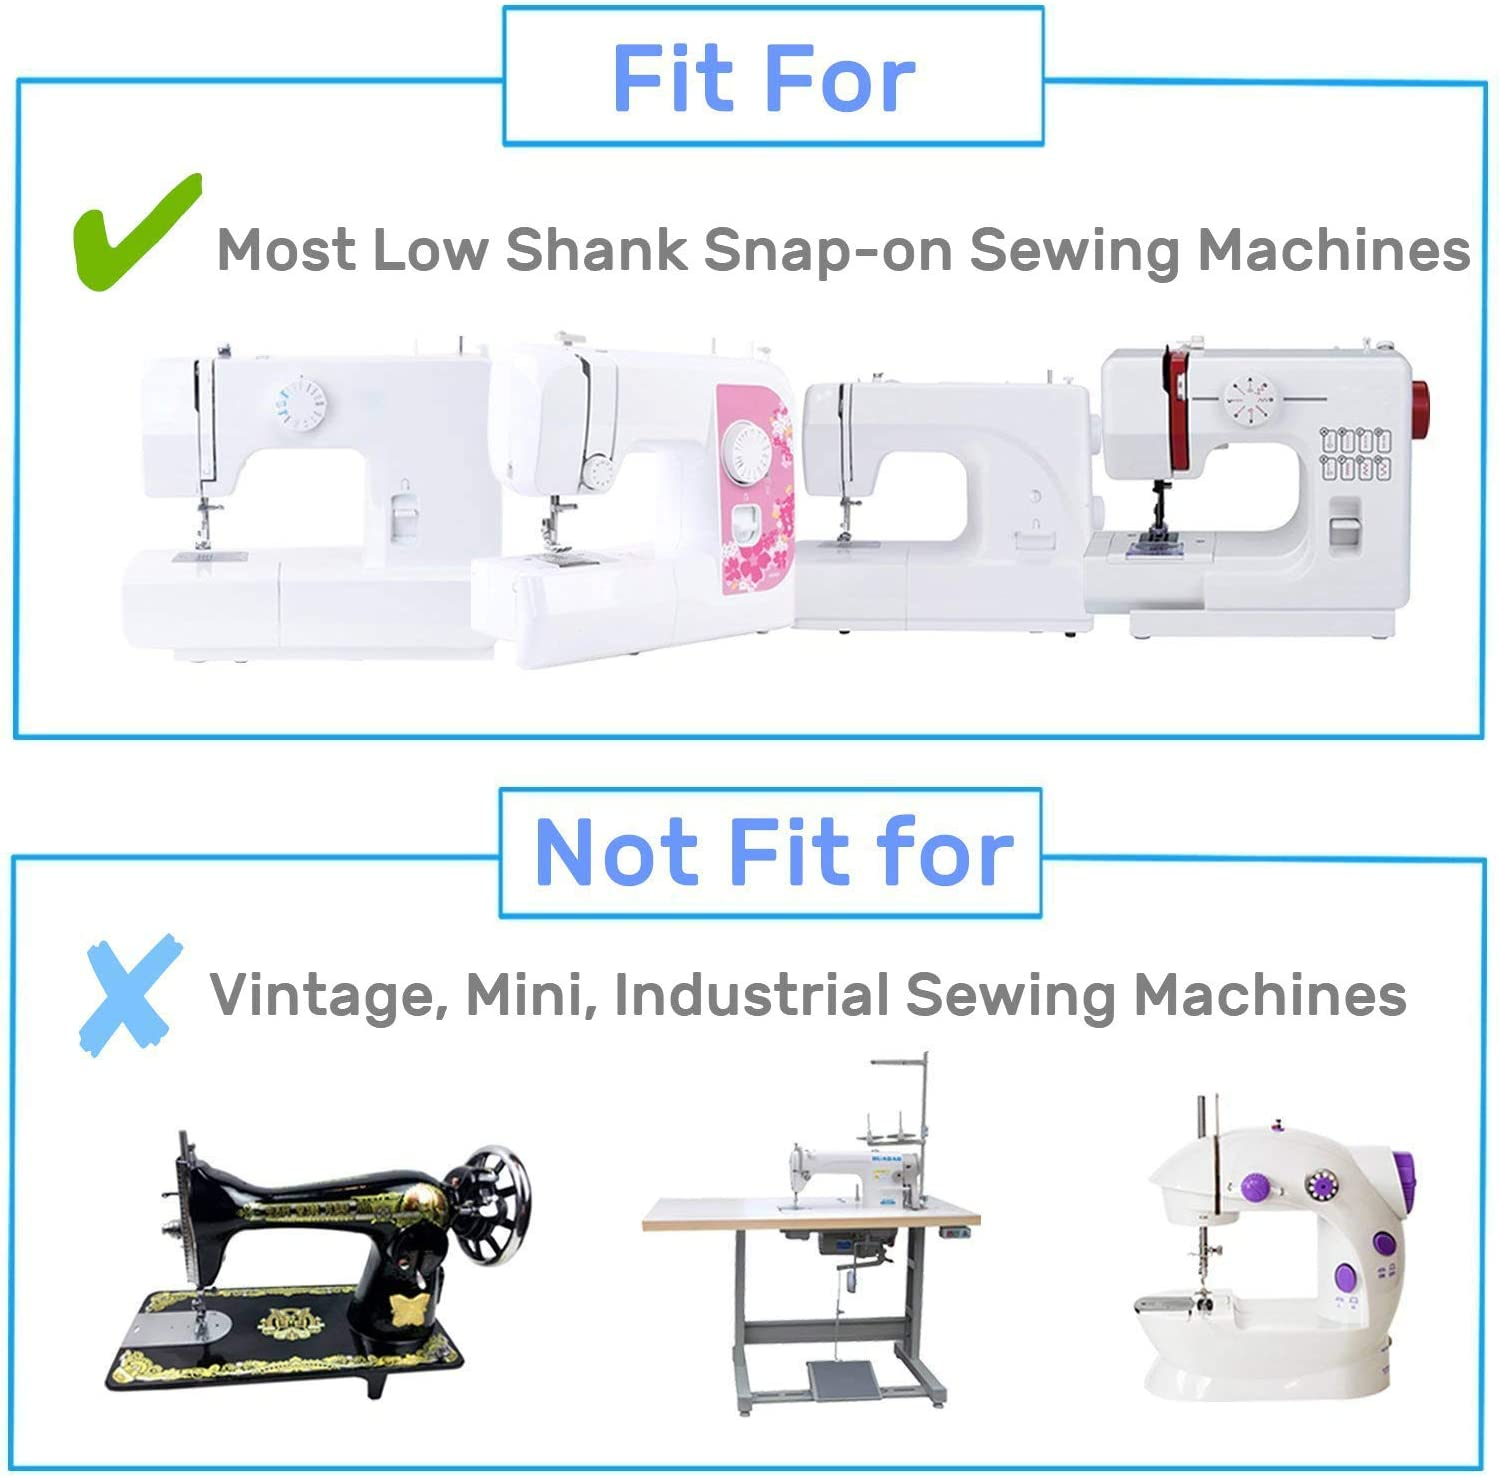 White Kalevel Gathering Shirring Foot Sewing Machine Presser Pressure Feet Foot Fits All Low Shank Singer New Home Elna and More Simplicity Janome Euro-Pro Juki Kenmore Brother Babylock